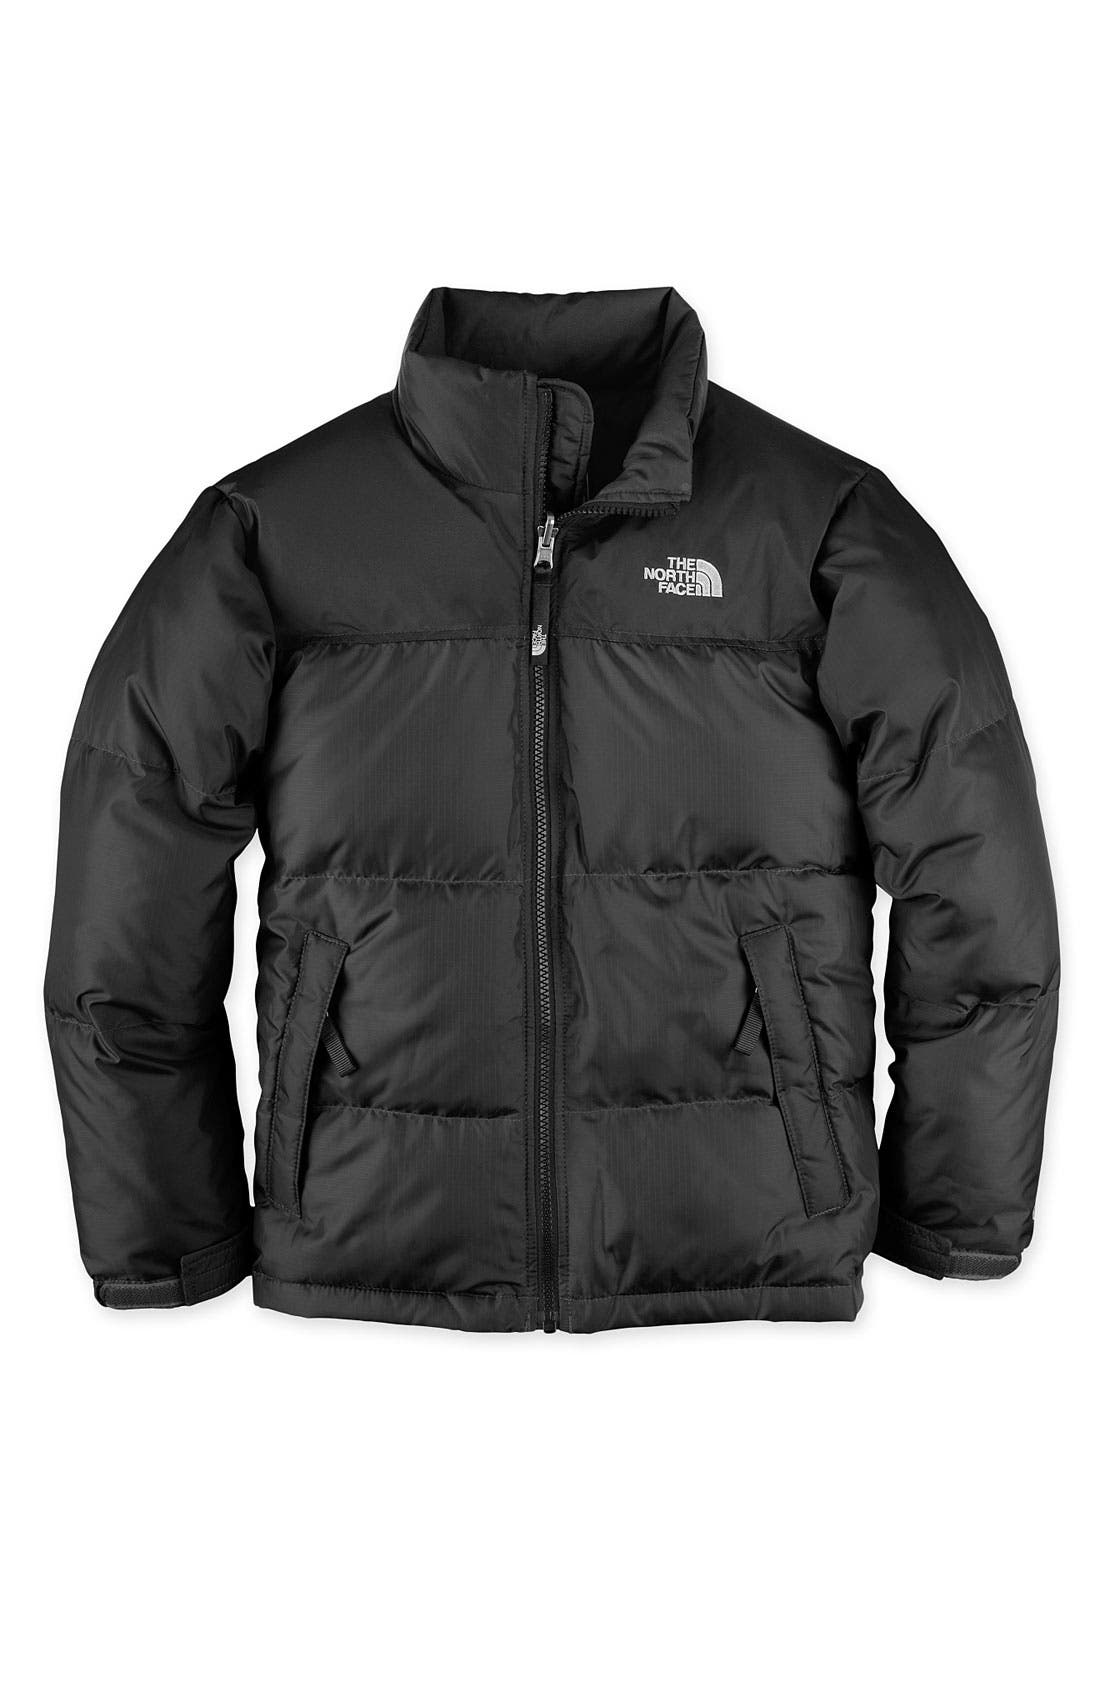 Alternate Image 1 Selected - The North Face 'Nuptse' Jacket (Little Boys)